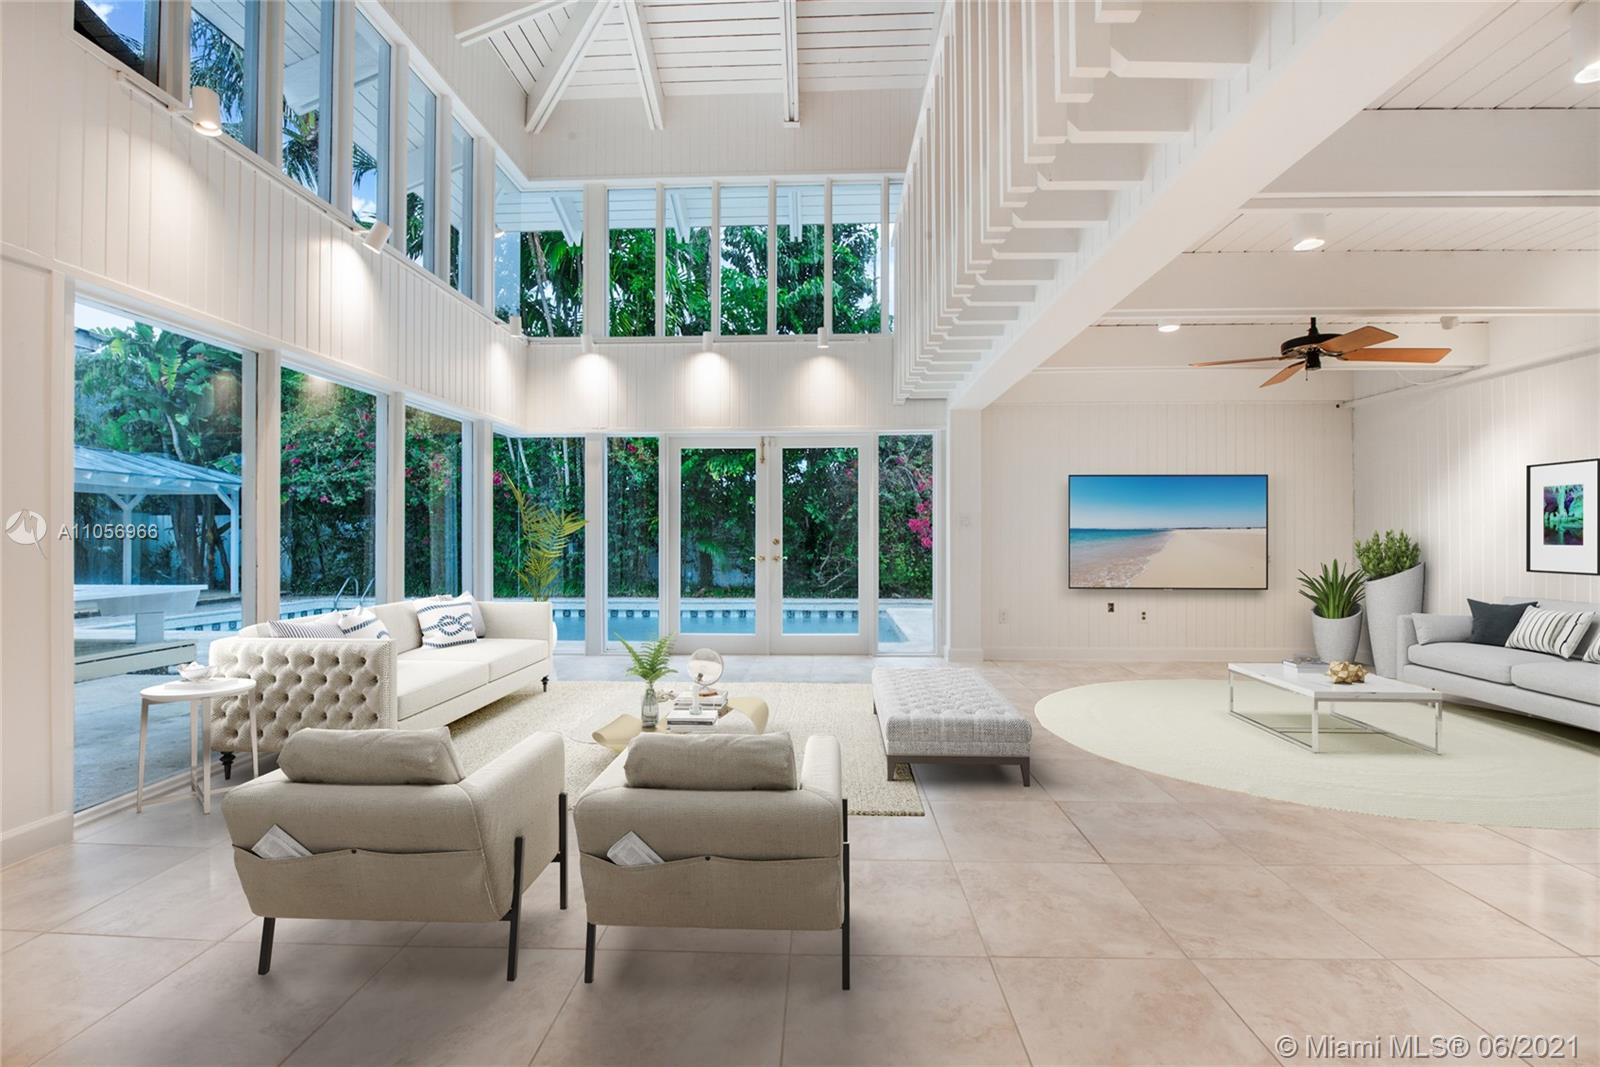 Luminous Key West-style residence located in the prized and highly sought-after High Pines/Ponce Davis neighborhood. The residence relishes in natural light just about all day long from the many windows and doors. The cathedral ceilings plus the 360 views of the colorful grounds, pool, pavilions + arbors add to the drama! The home features lots of casual spaces and offers flexibilty in its layout (currently 2 bedrooms + den/3rd and loft). Its kitchen enjoys a large breakfast area and it's also adjacent to the formal dining and storage room. This is the neighborhood's best value and expected to sell expeditiously!